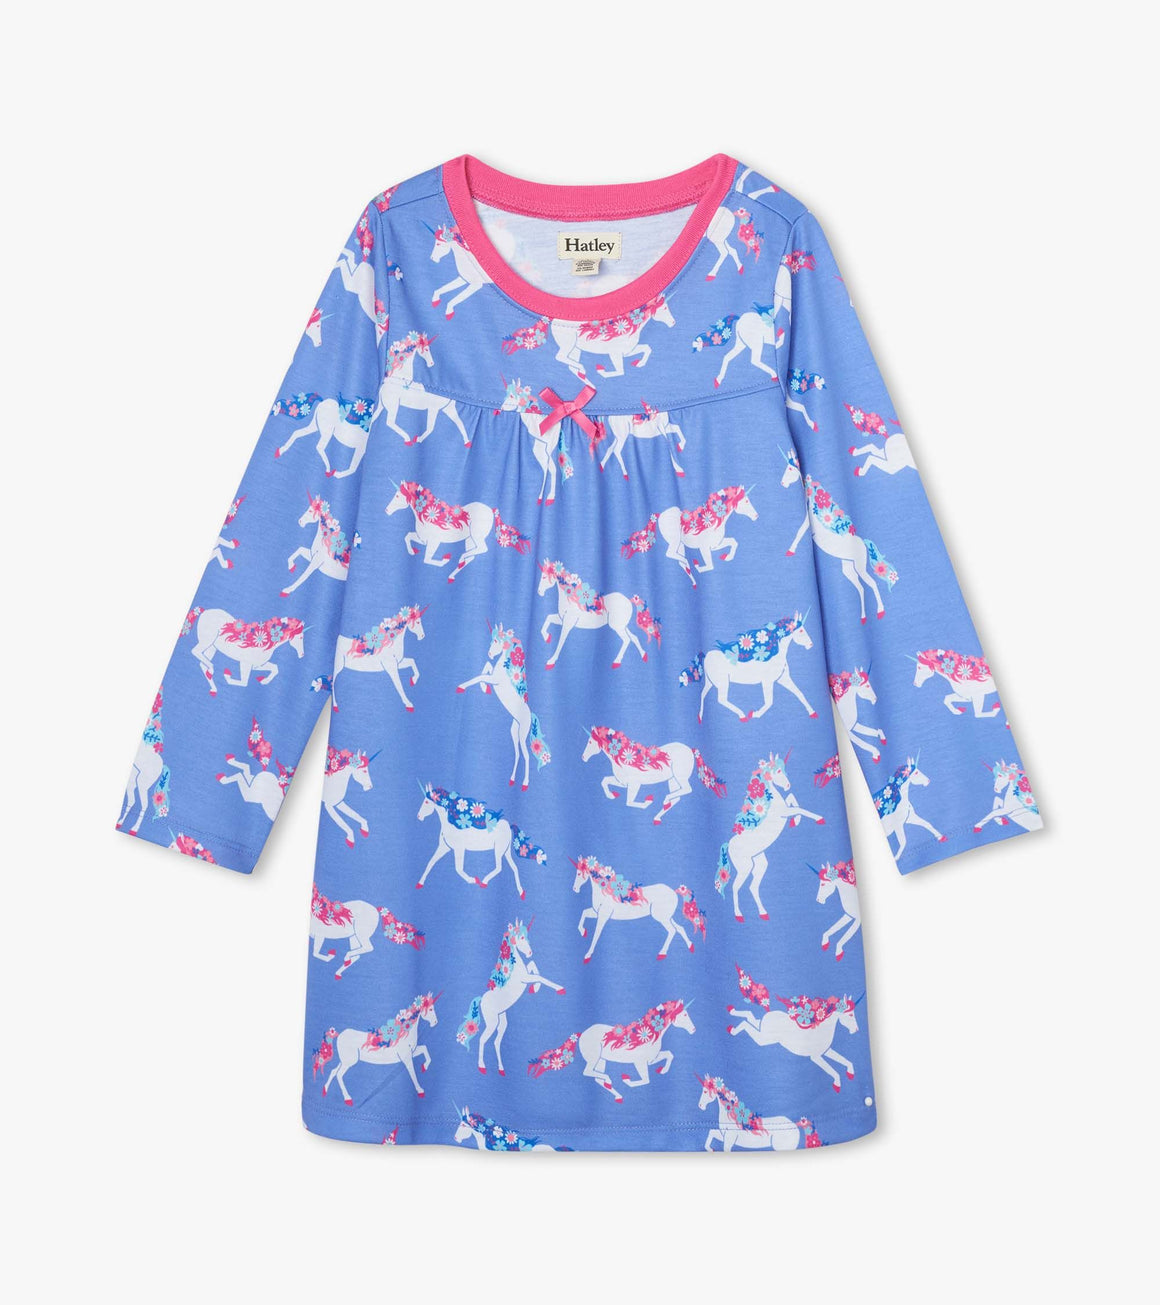 Girls long sleeve night gown in periwinkle blue with dreamy unicorns with flowers in their hair.